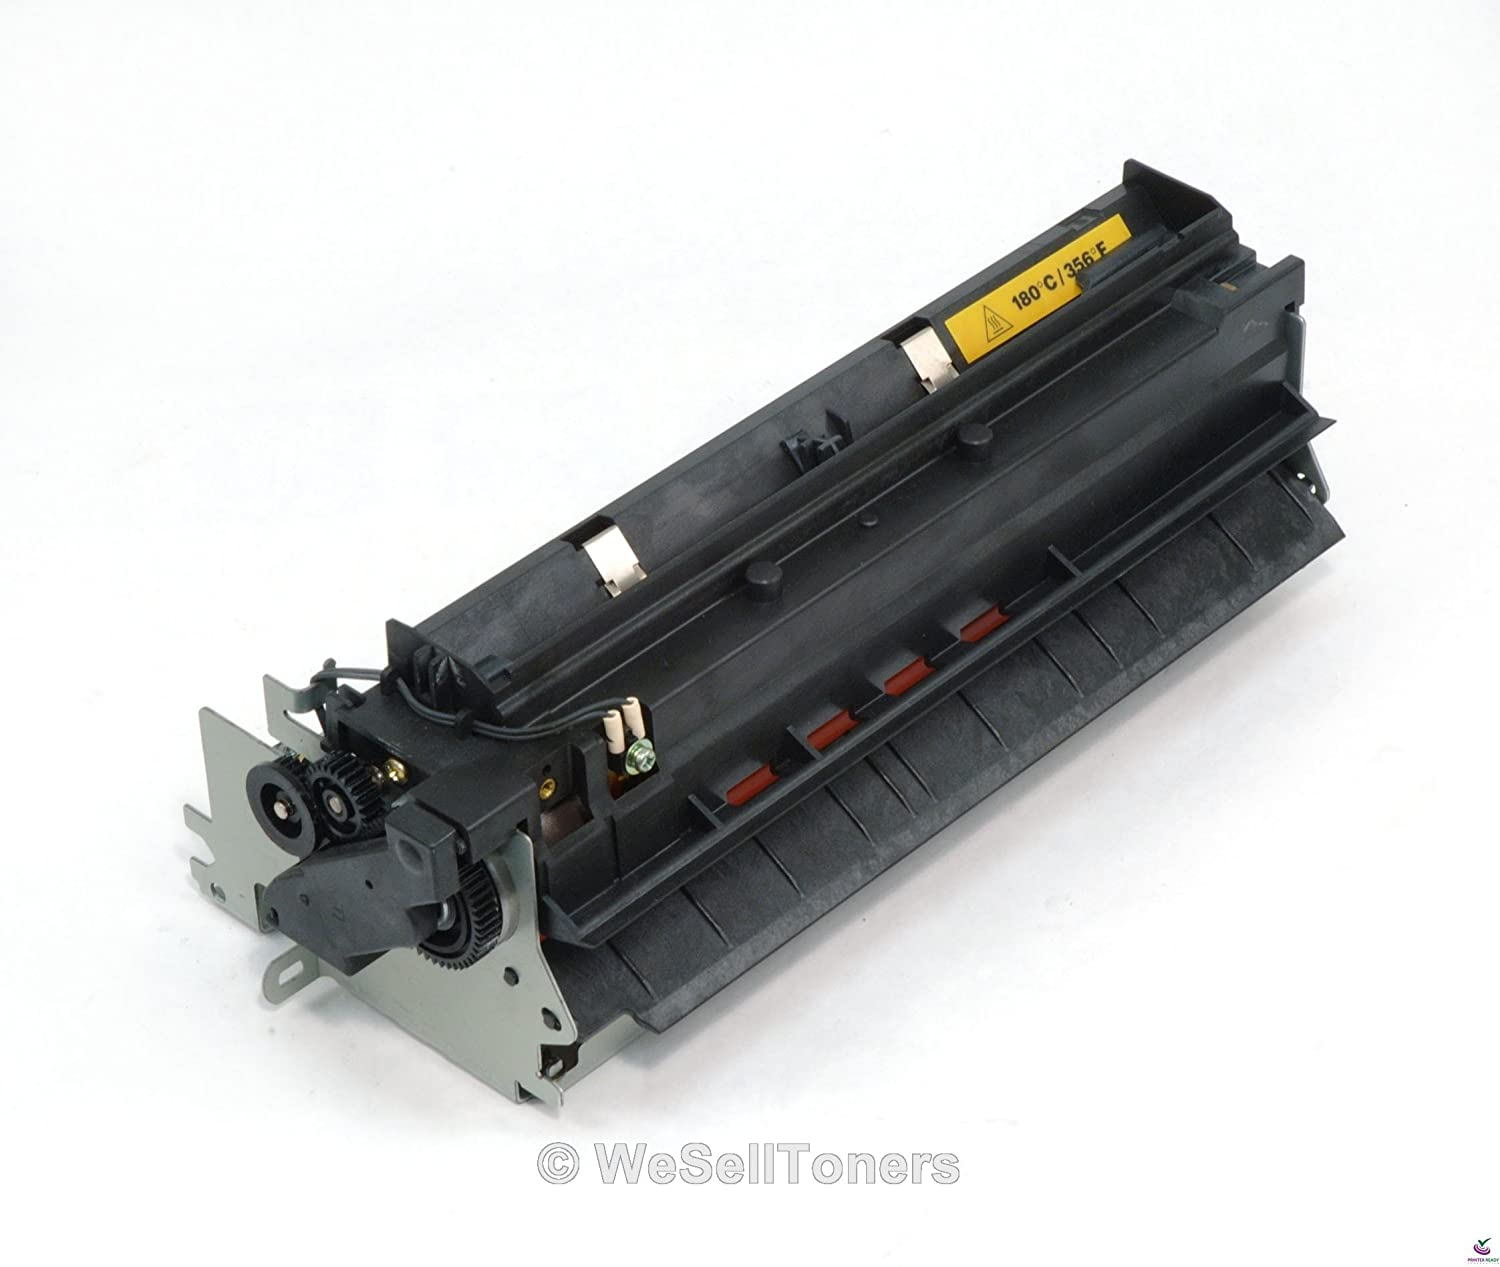 Lexmark T520 Denver Mall 522 Fuser Courier shipping free shipping OEM Assy Outright